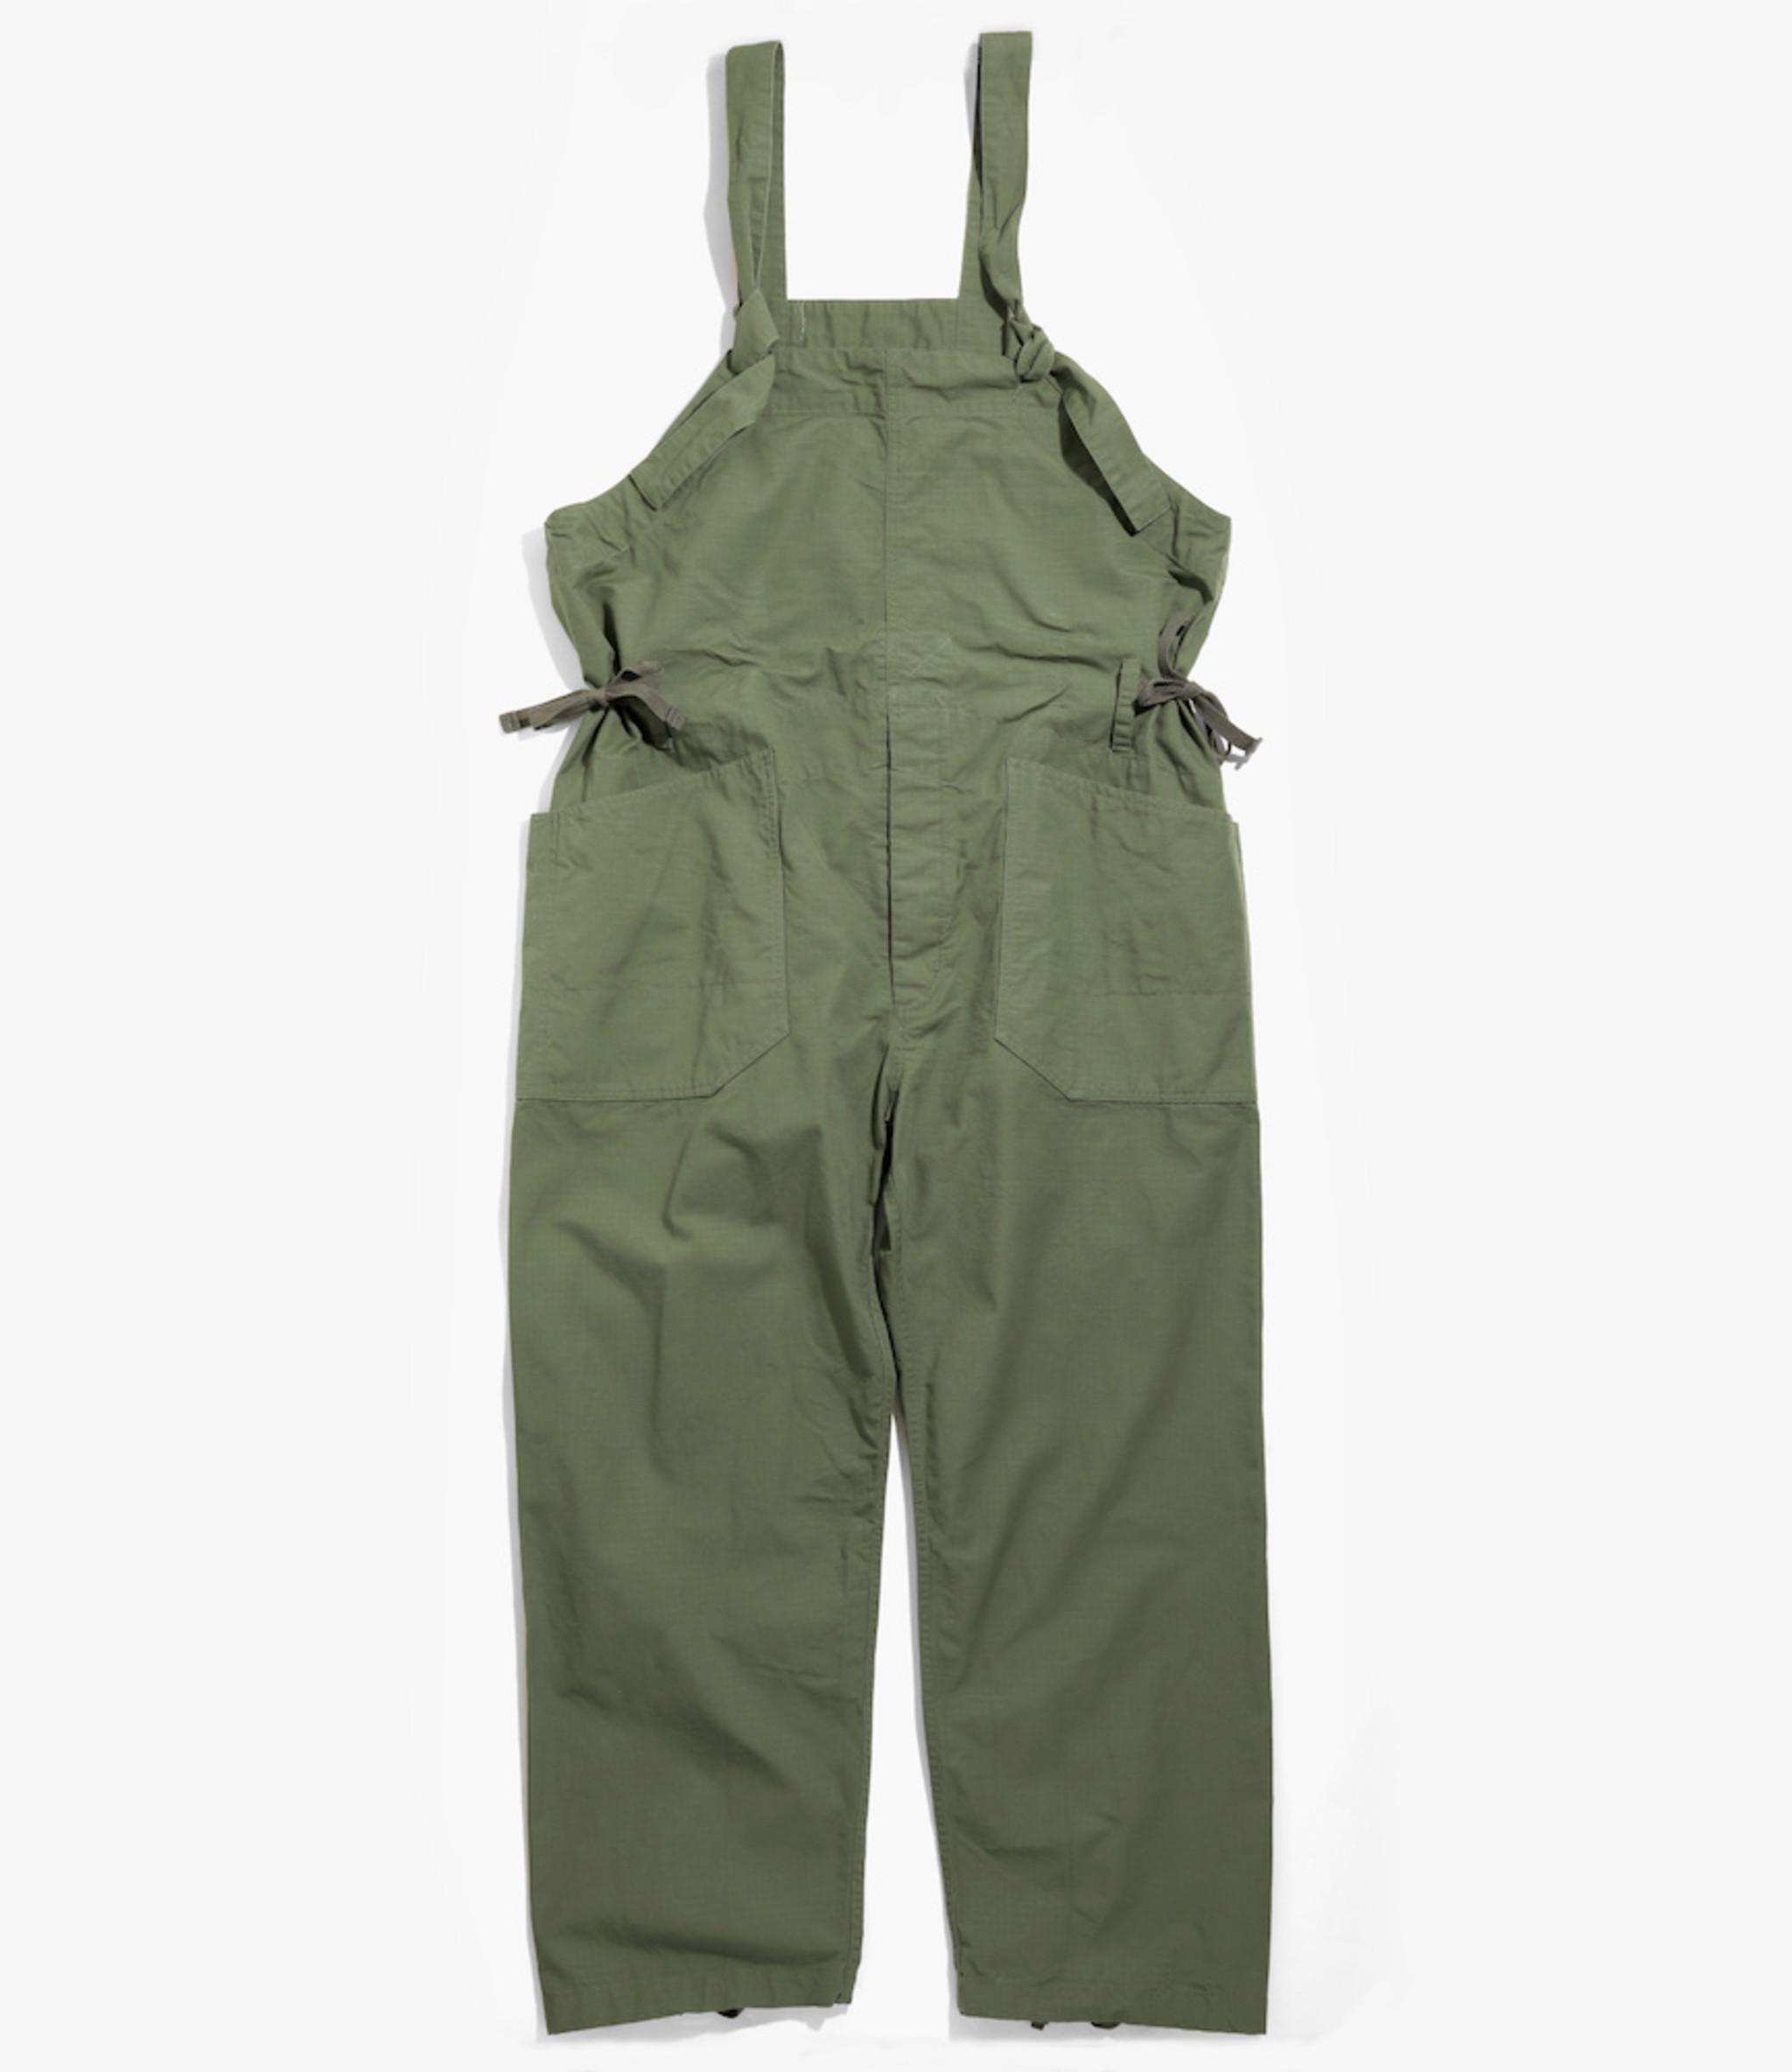 Engineered Garments Overalls - Olive Cotton Ripstop